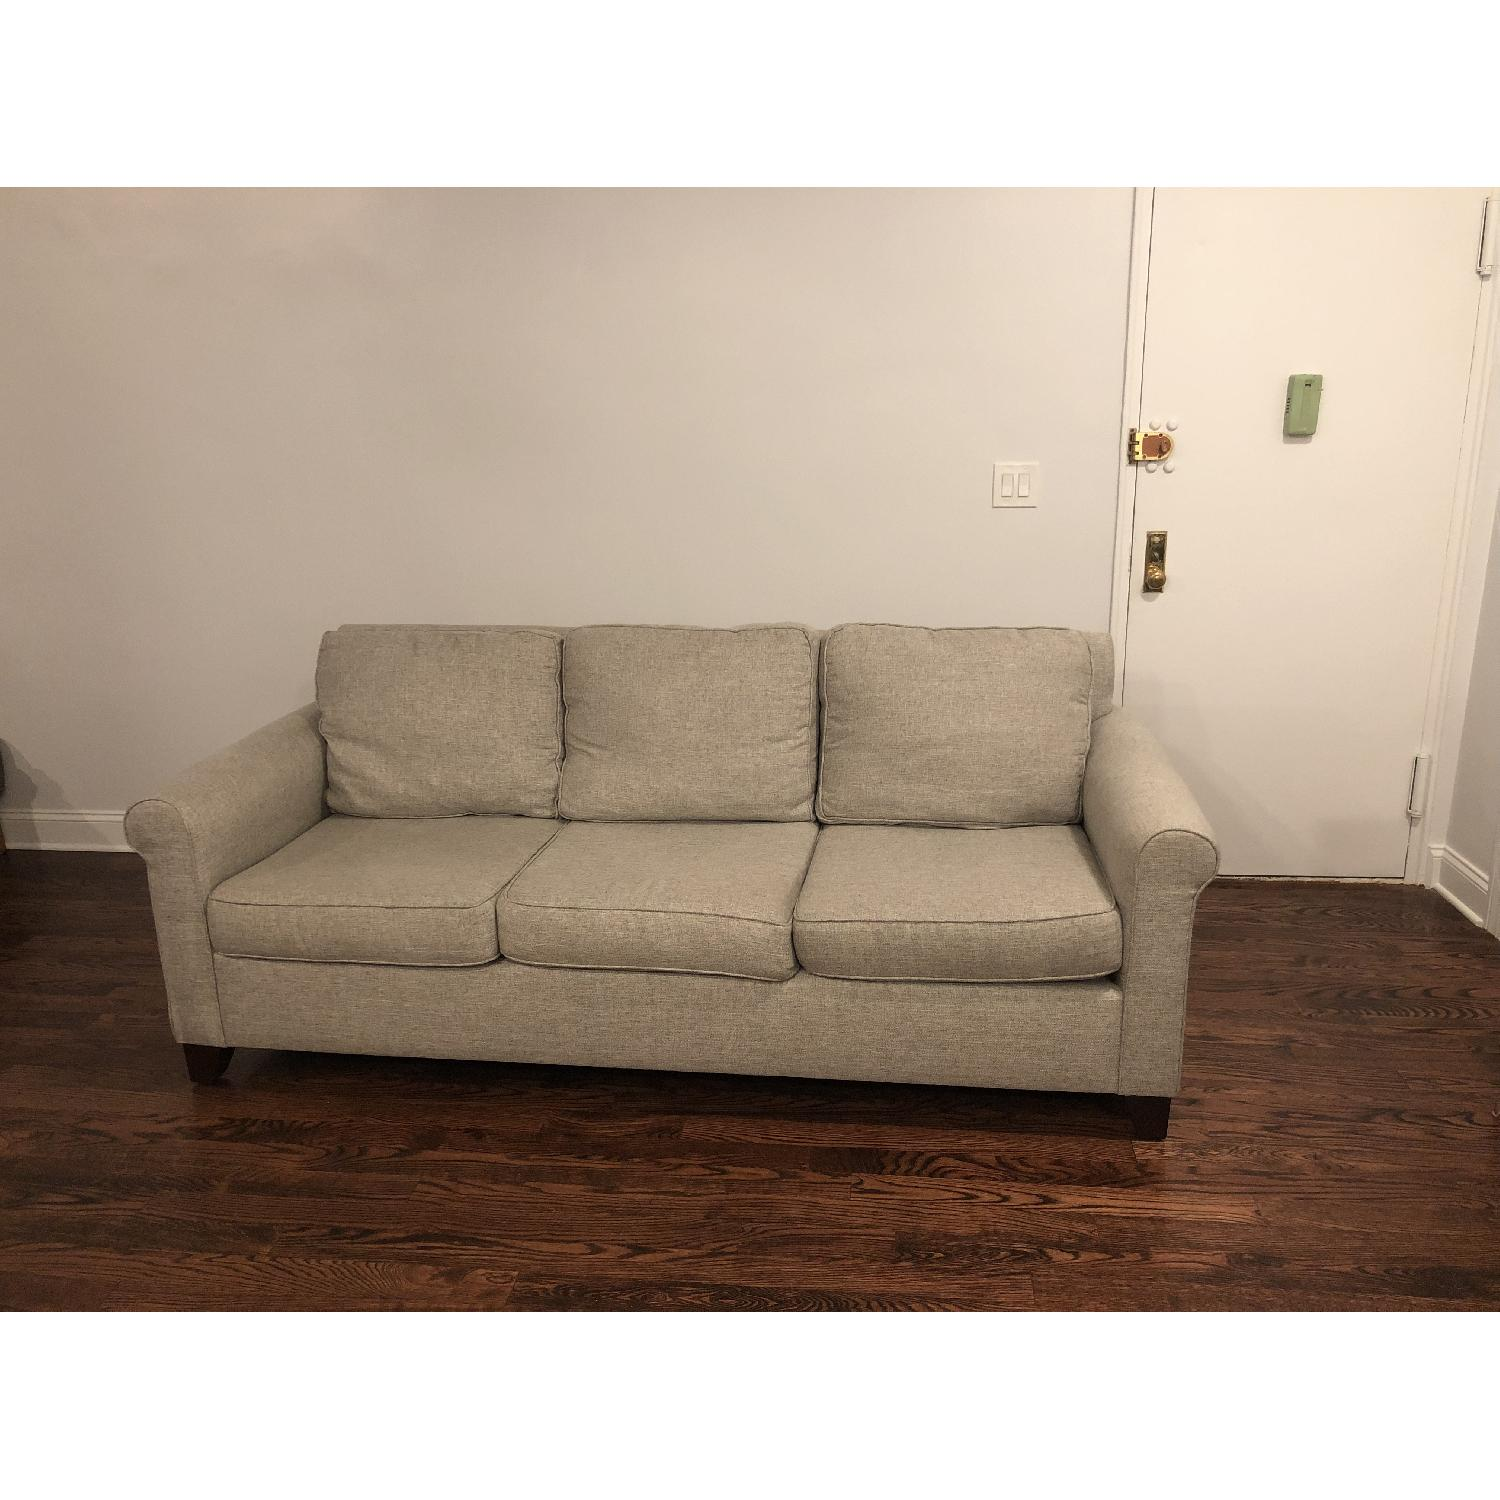 Pottery Barn Cameron Upholstered Sofa - image-1